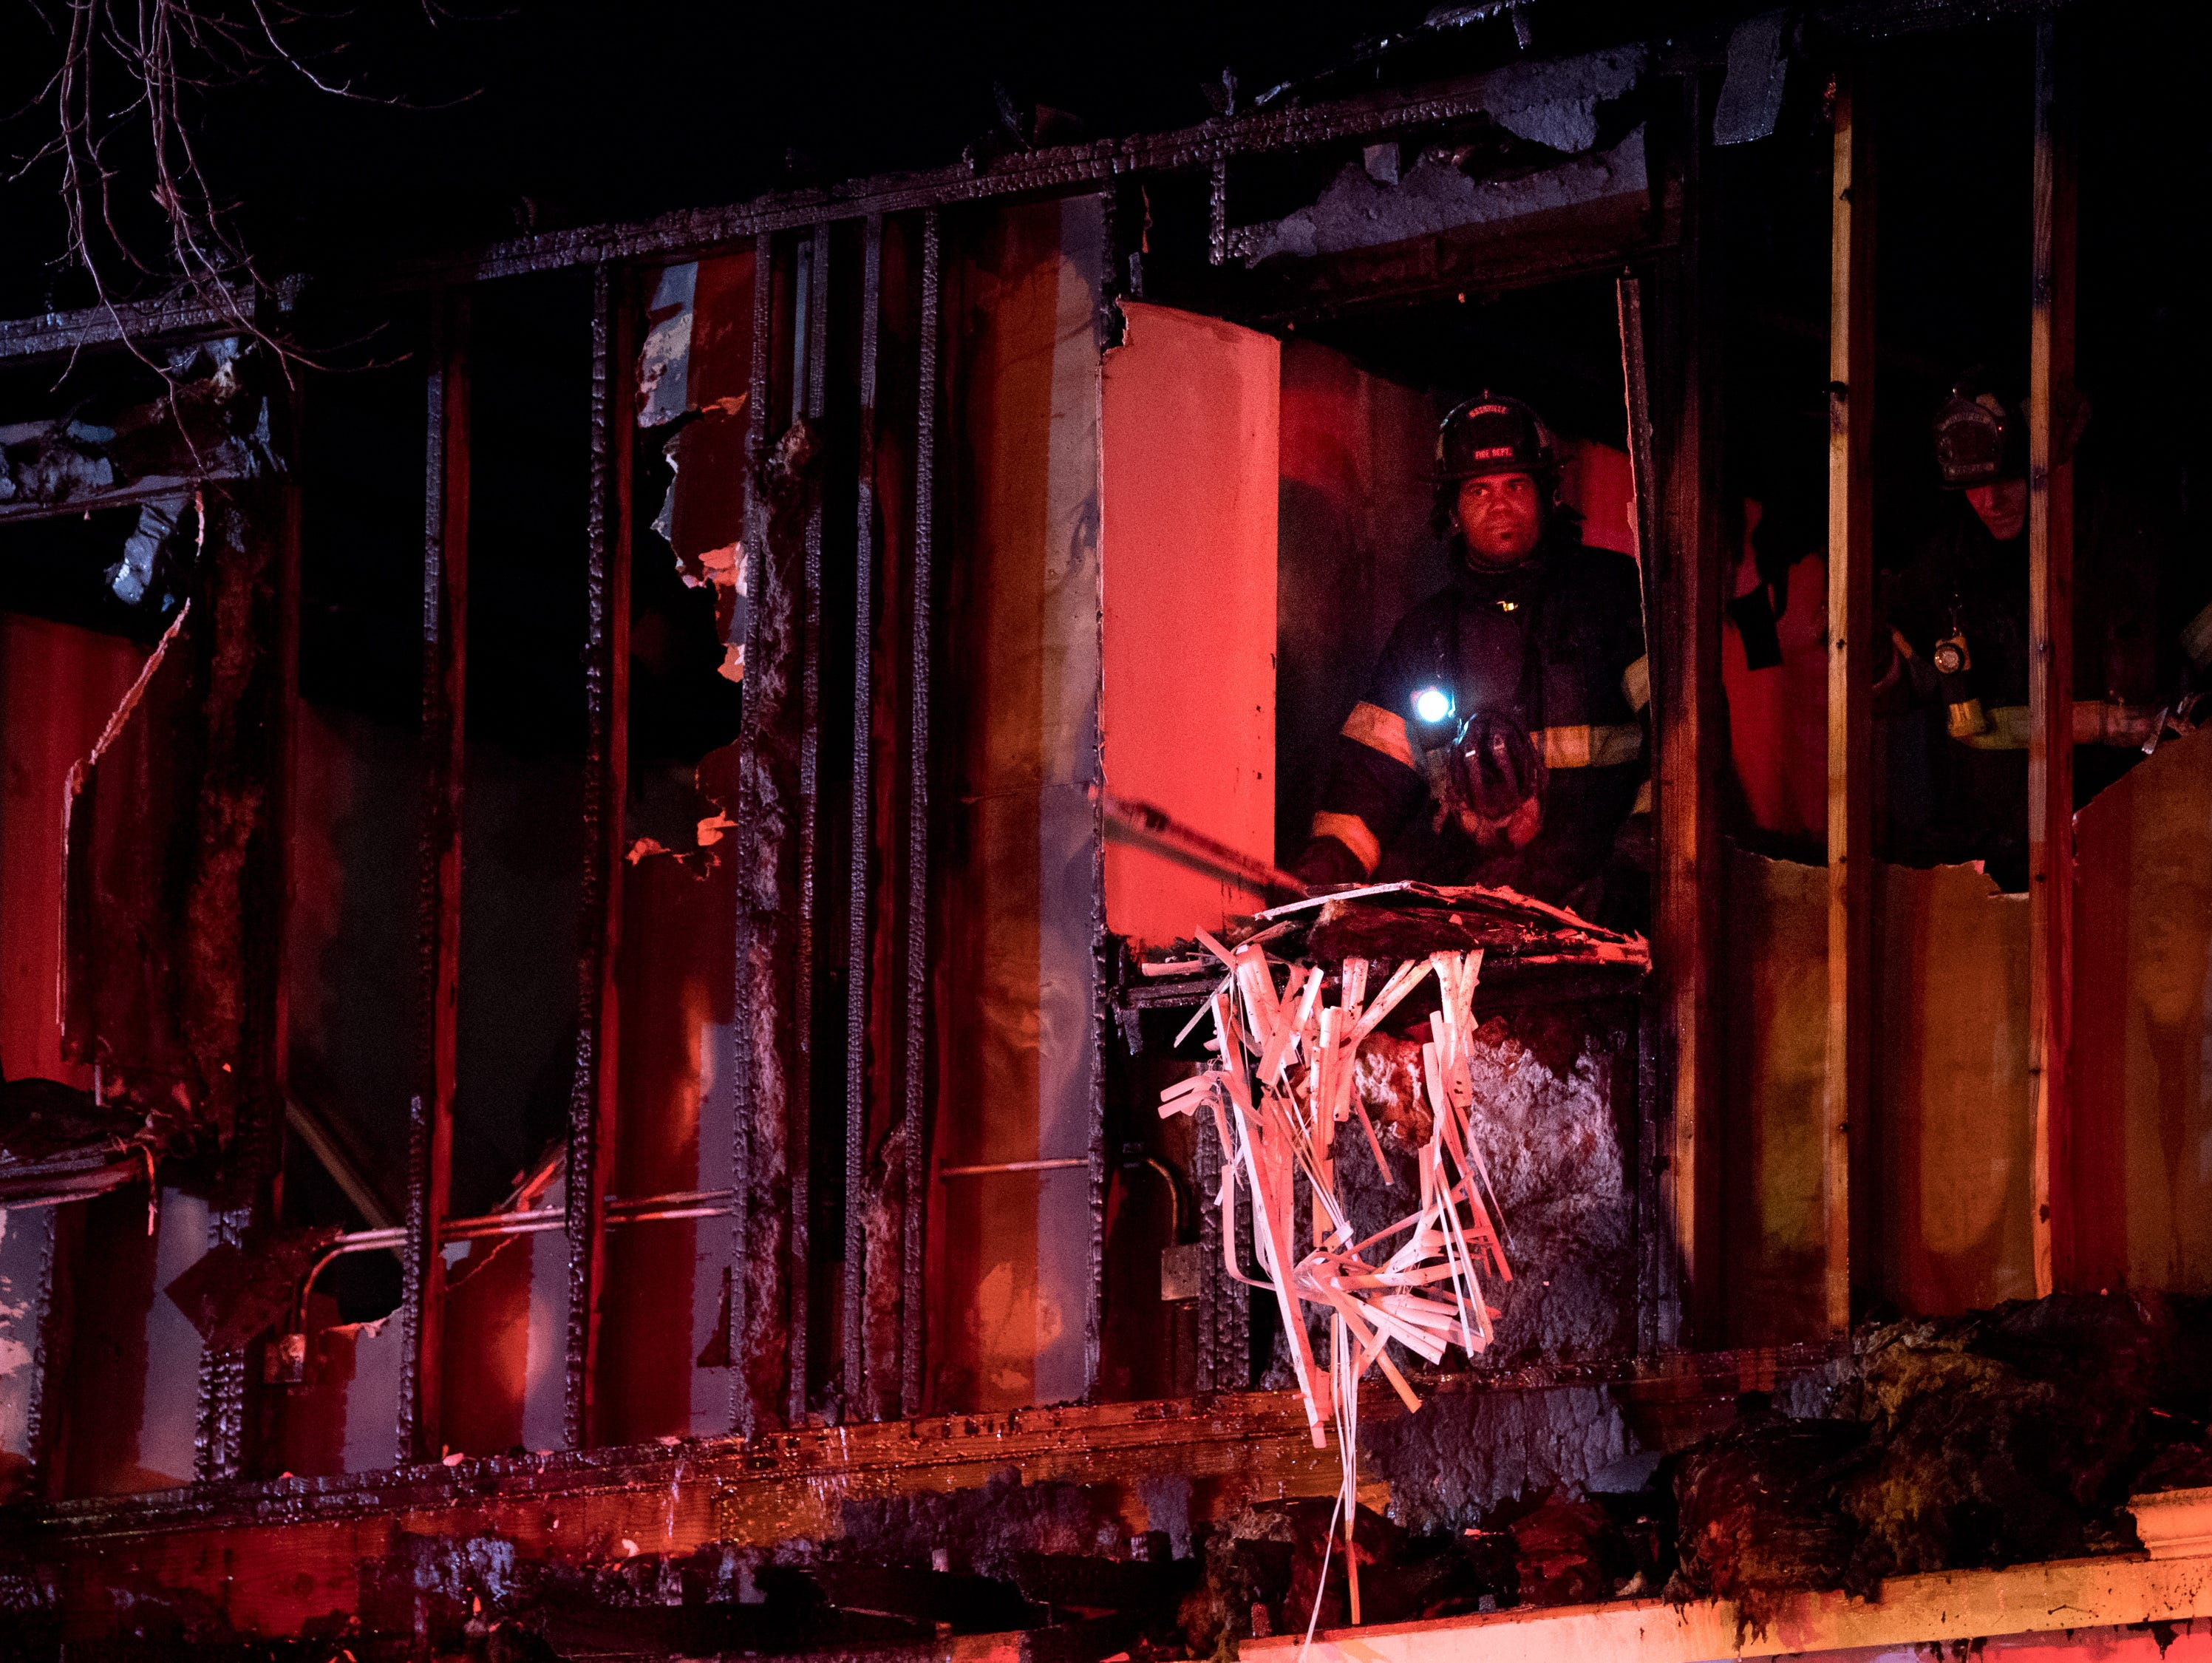 electrical wiring to blame for massive bellevue fire that displaced dozens of families